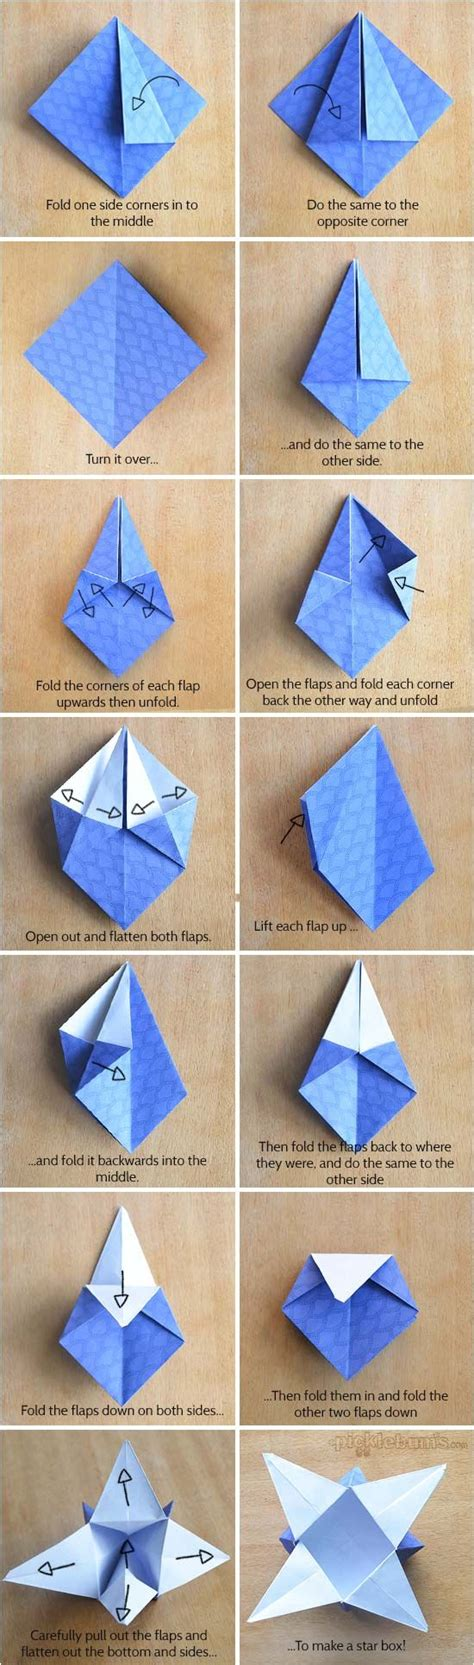 Origami Paper Tutorials And Origami On